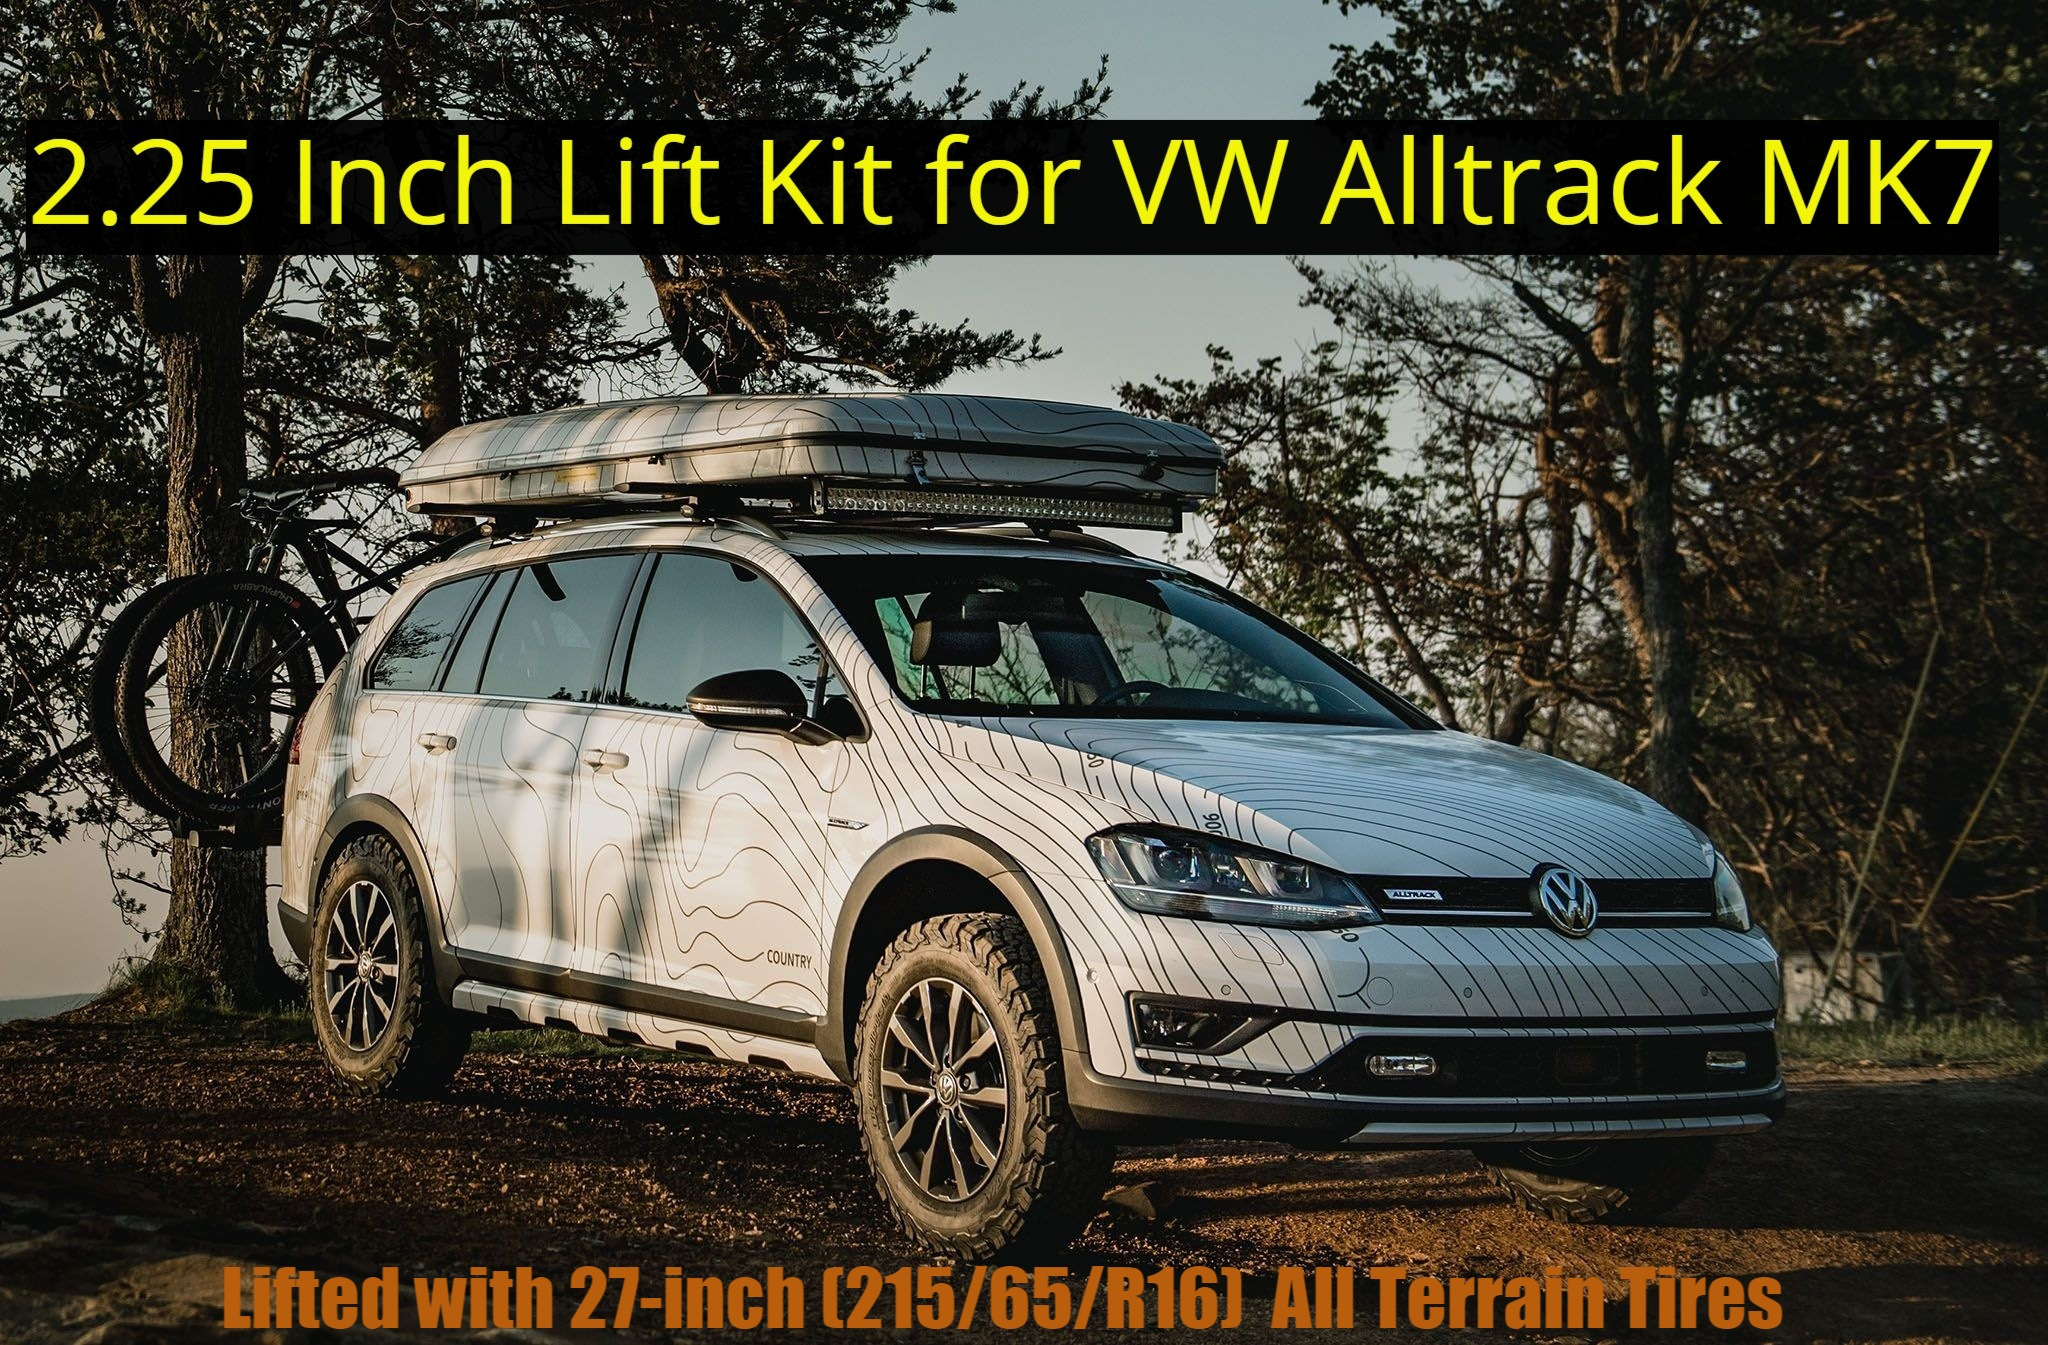 VW AllTrack / Golf Variant lifted 2.25 inches with 215/65R16 all-terrain tires.